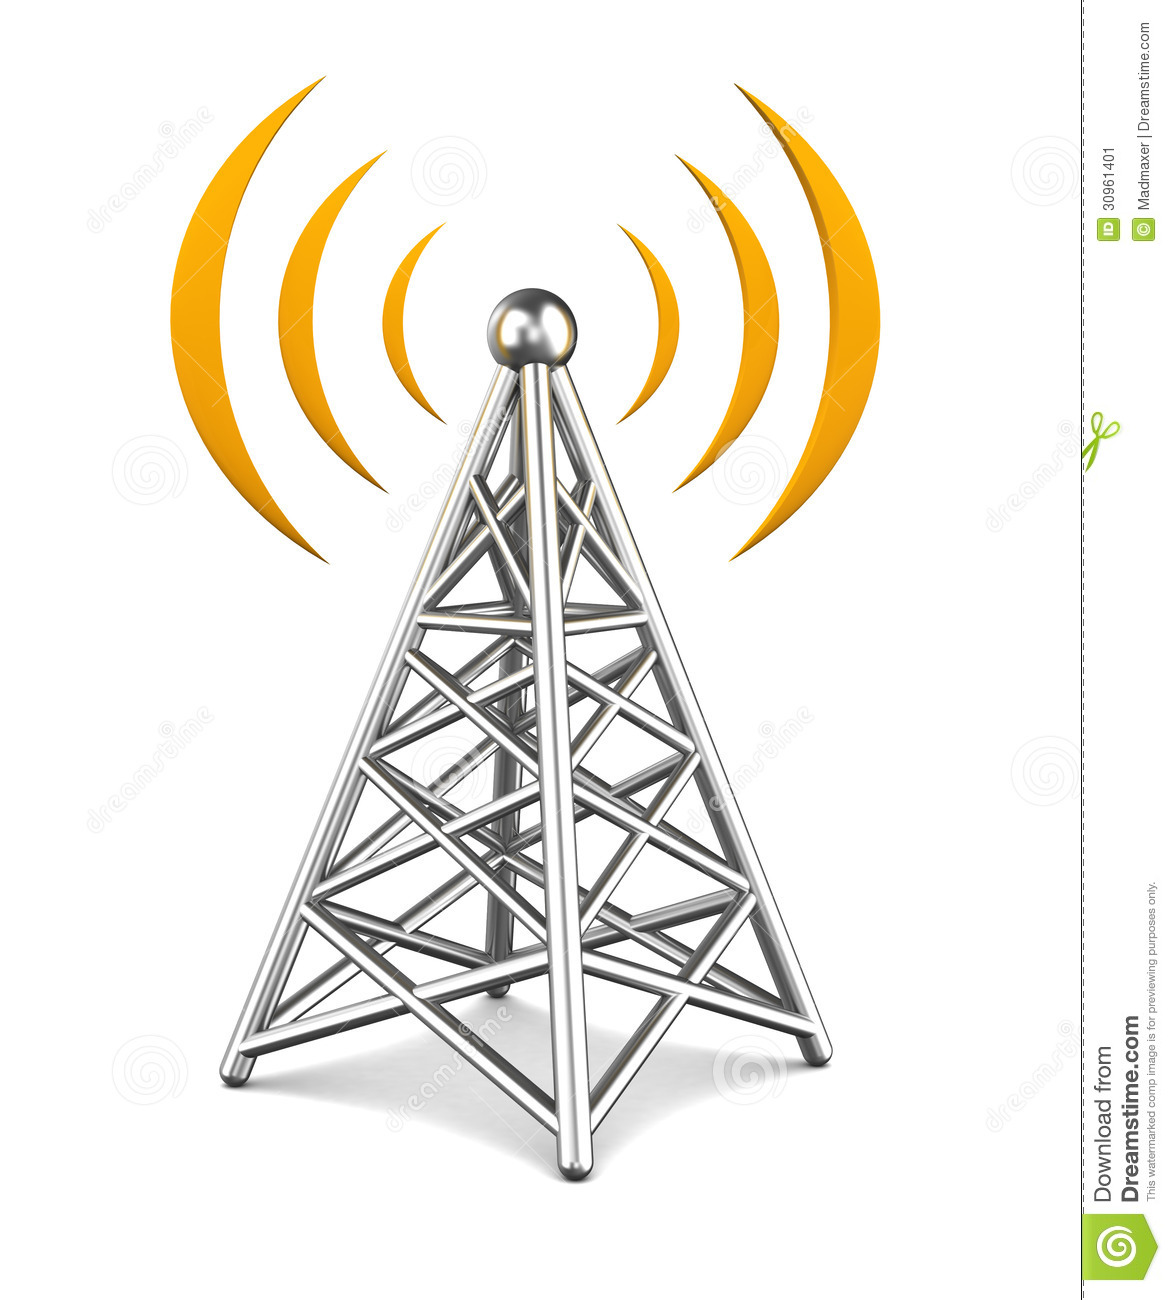 Mobile communication towers clip art.